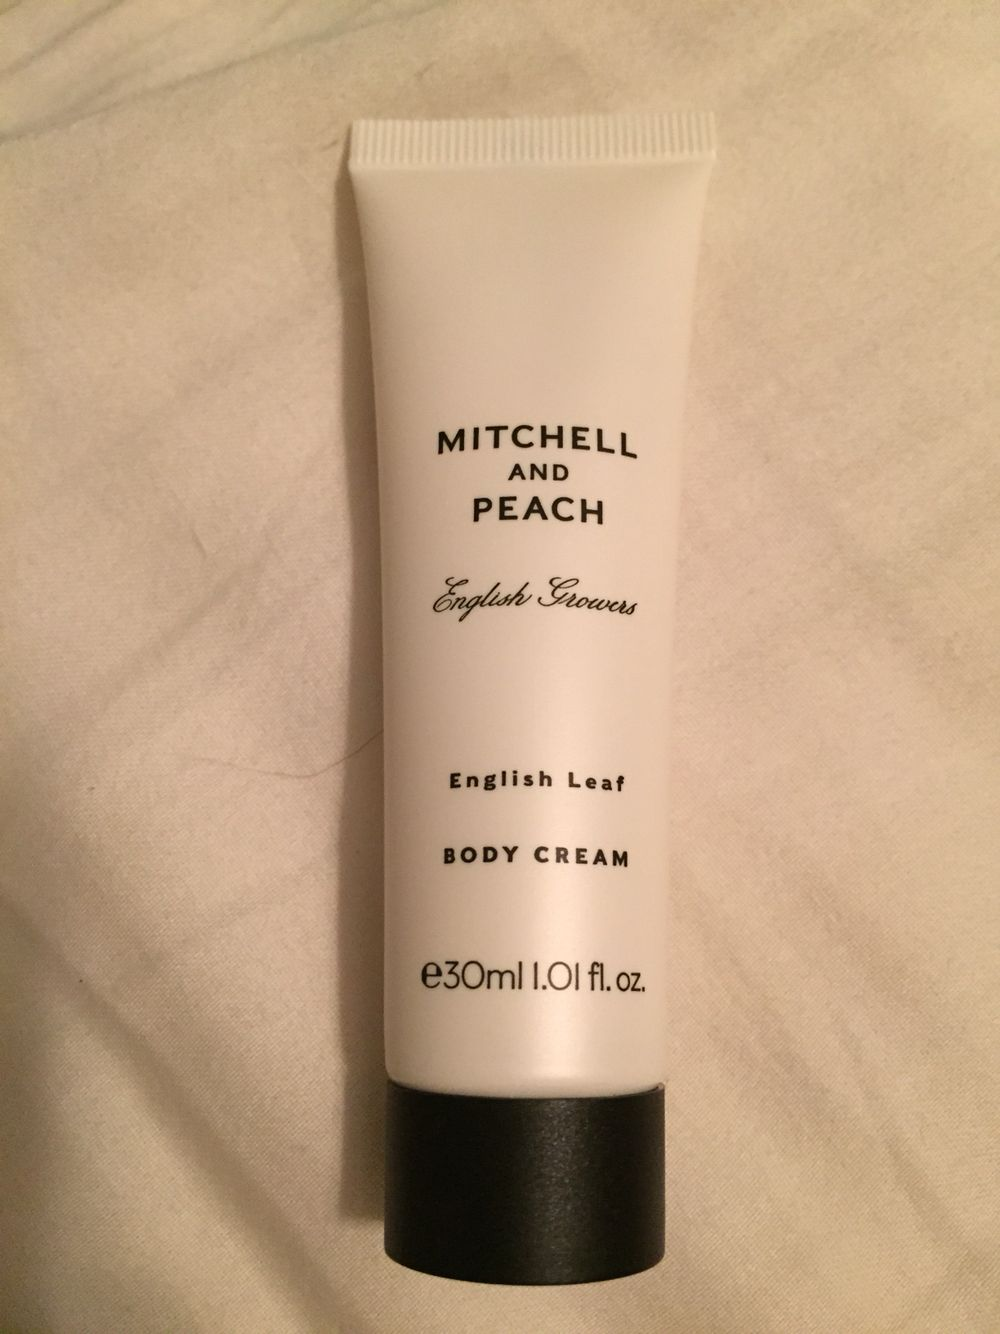 Mitchell and Peach Body Cream. New. (Open to smell the scent but not my scent.)